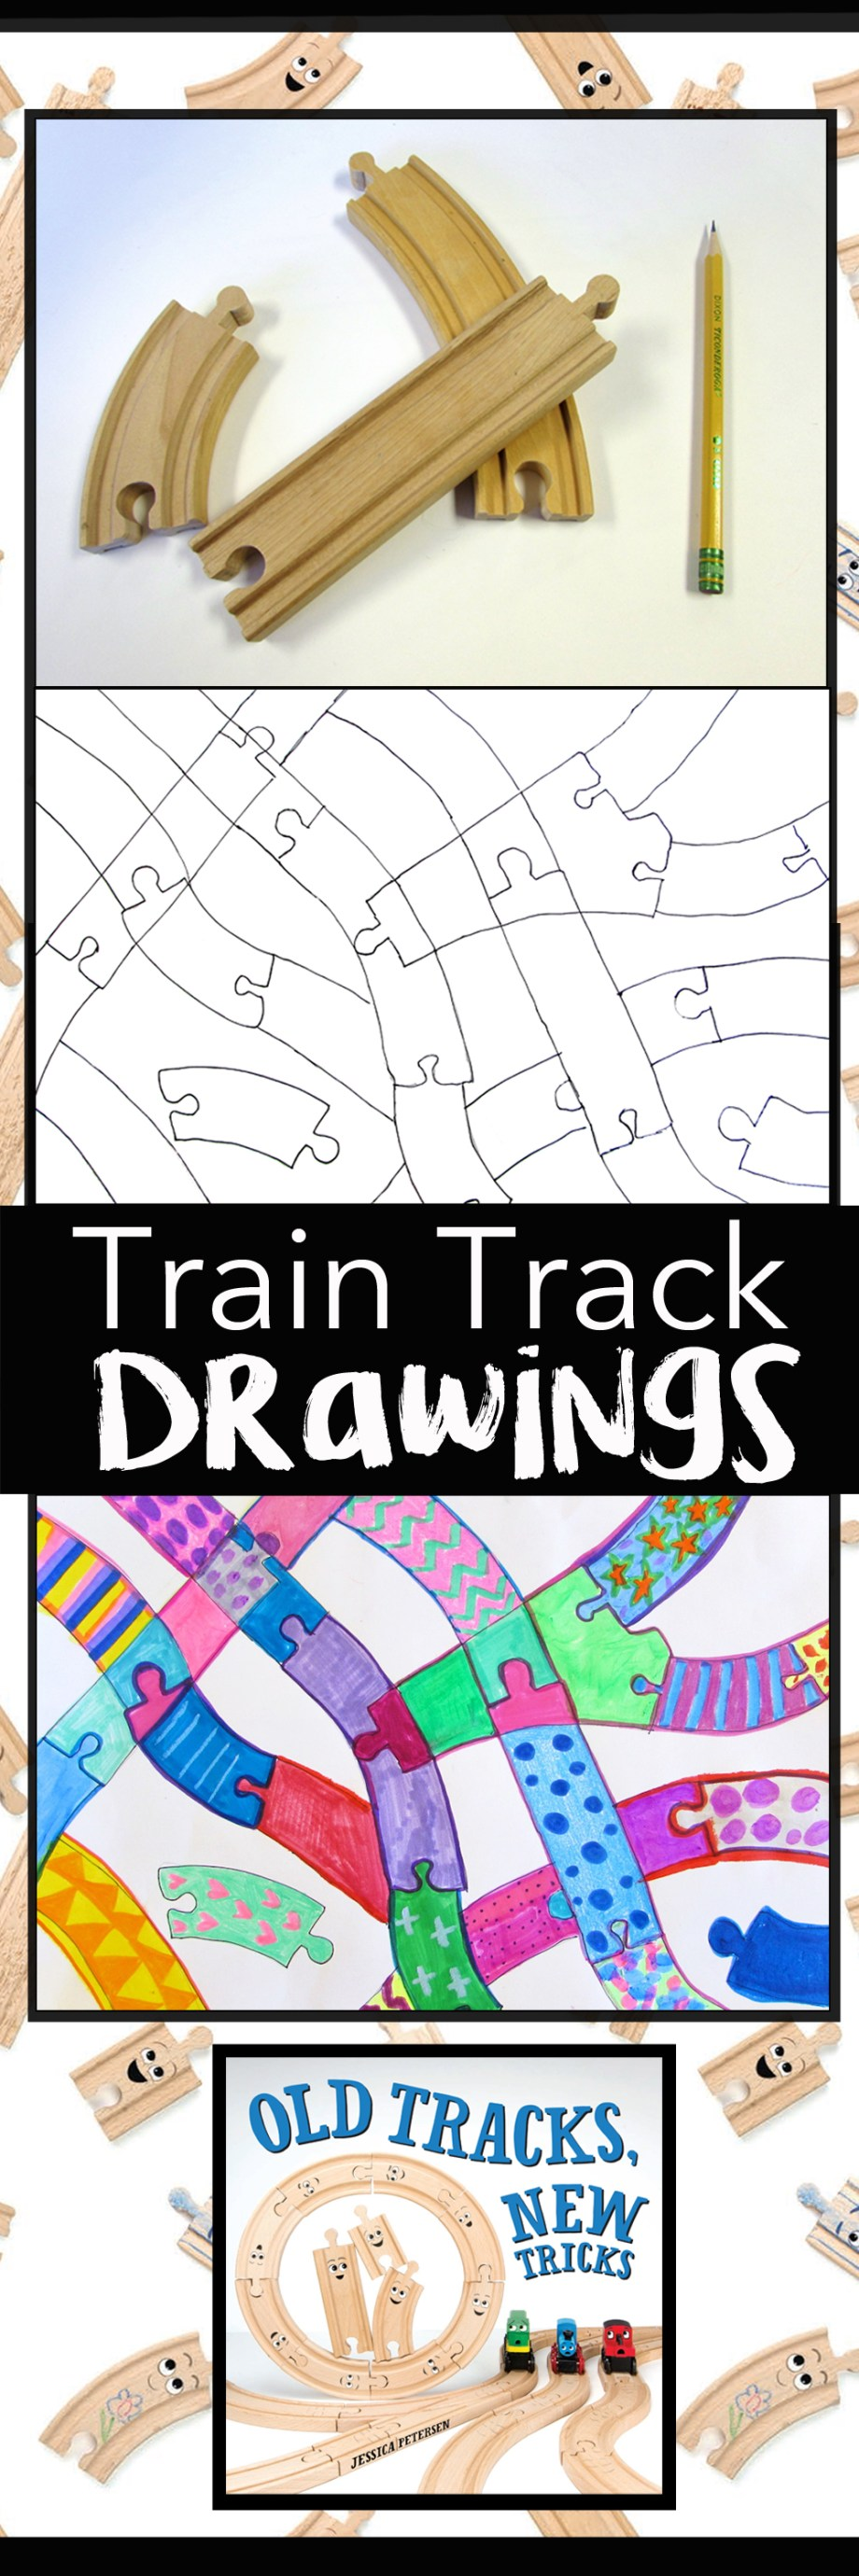 Train Track Drawings